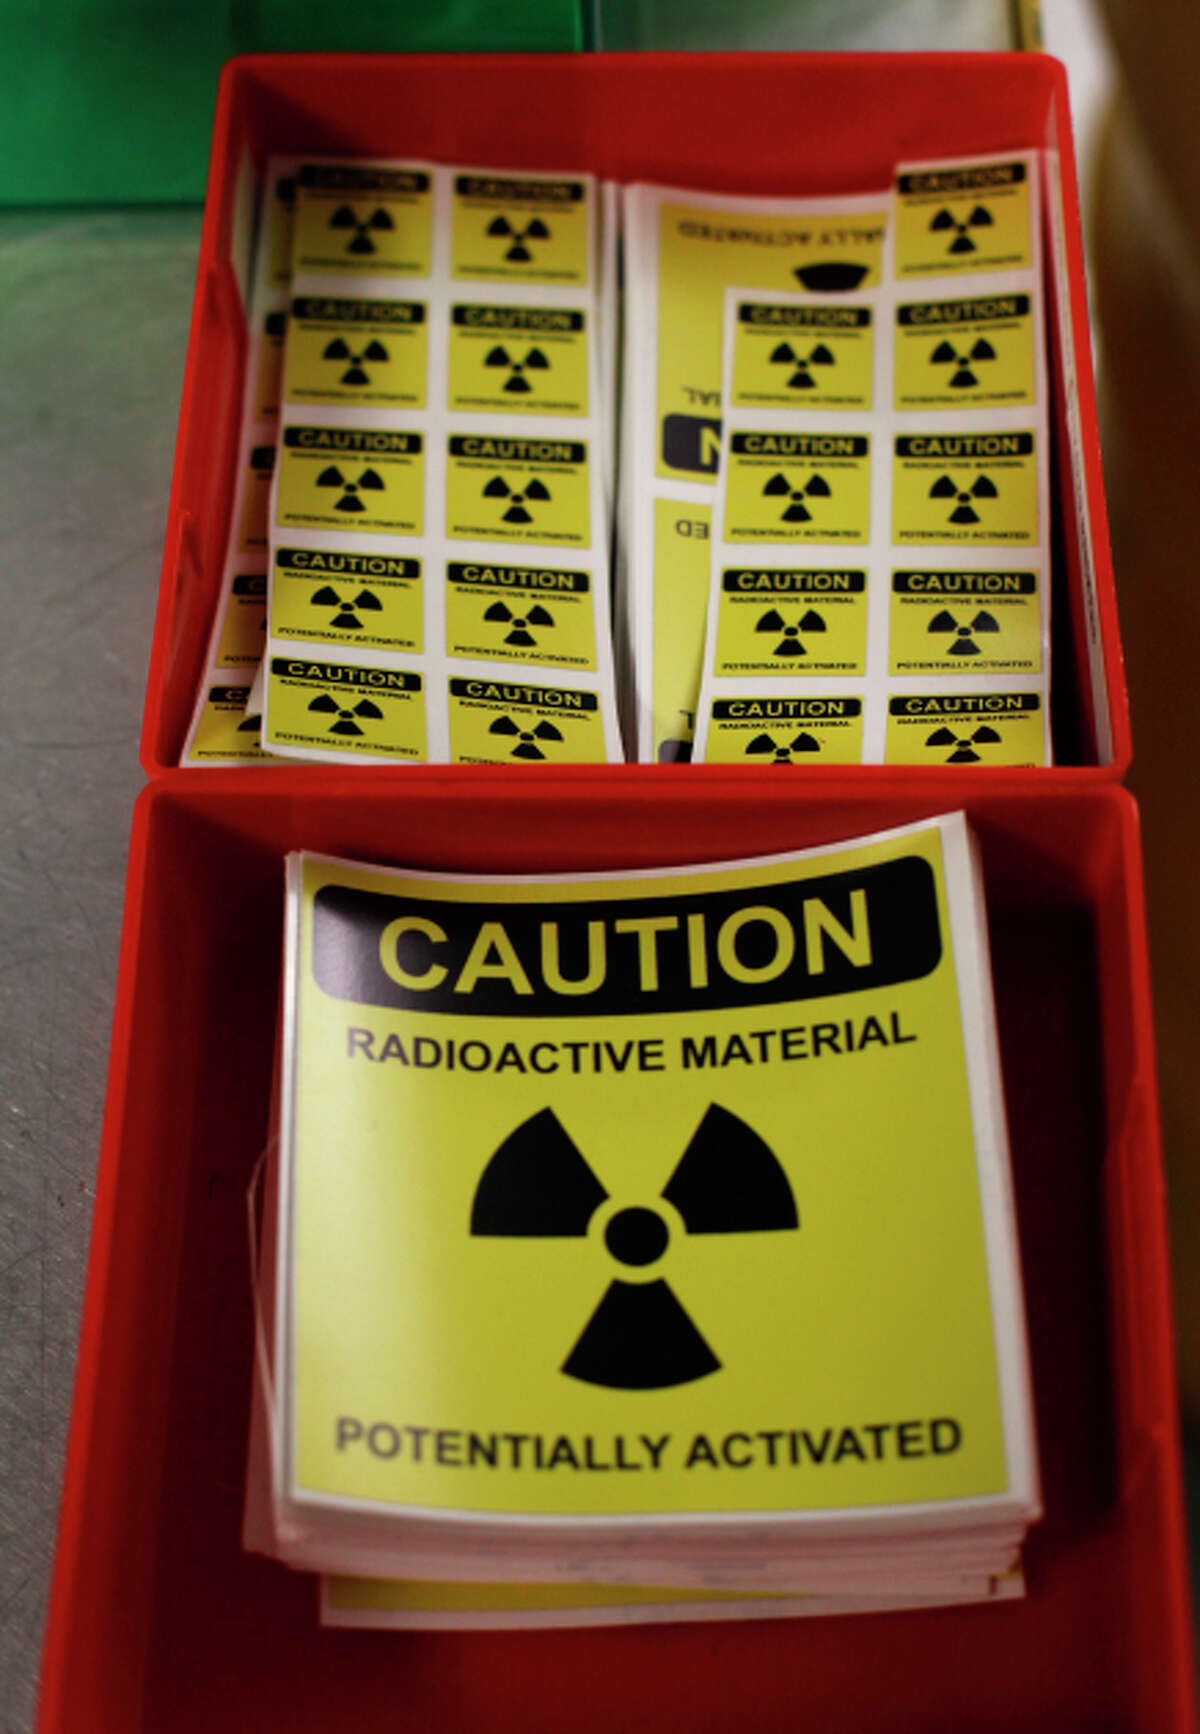 Stickers for marking objects that have been contaminated by radiation are seen at the National Ignition Facility at Lawrence Livermore National Laboratory on March 14, 2014 in Livermore, Calif.